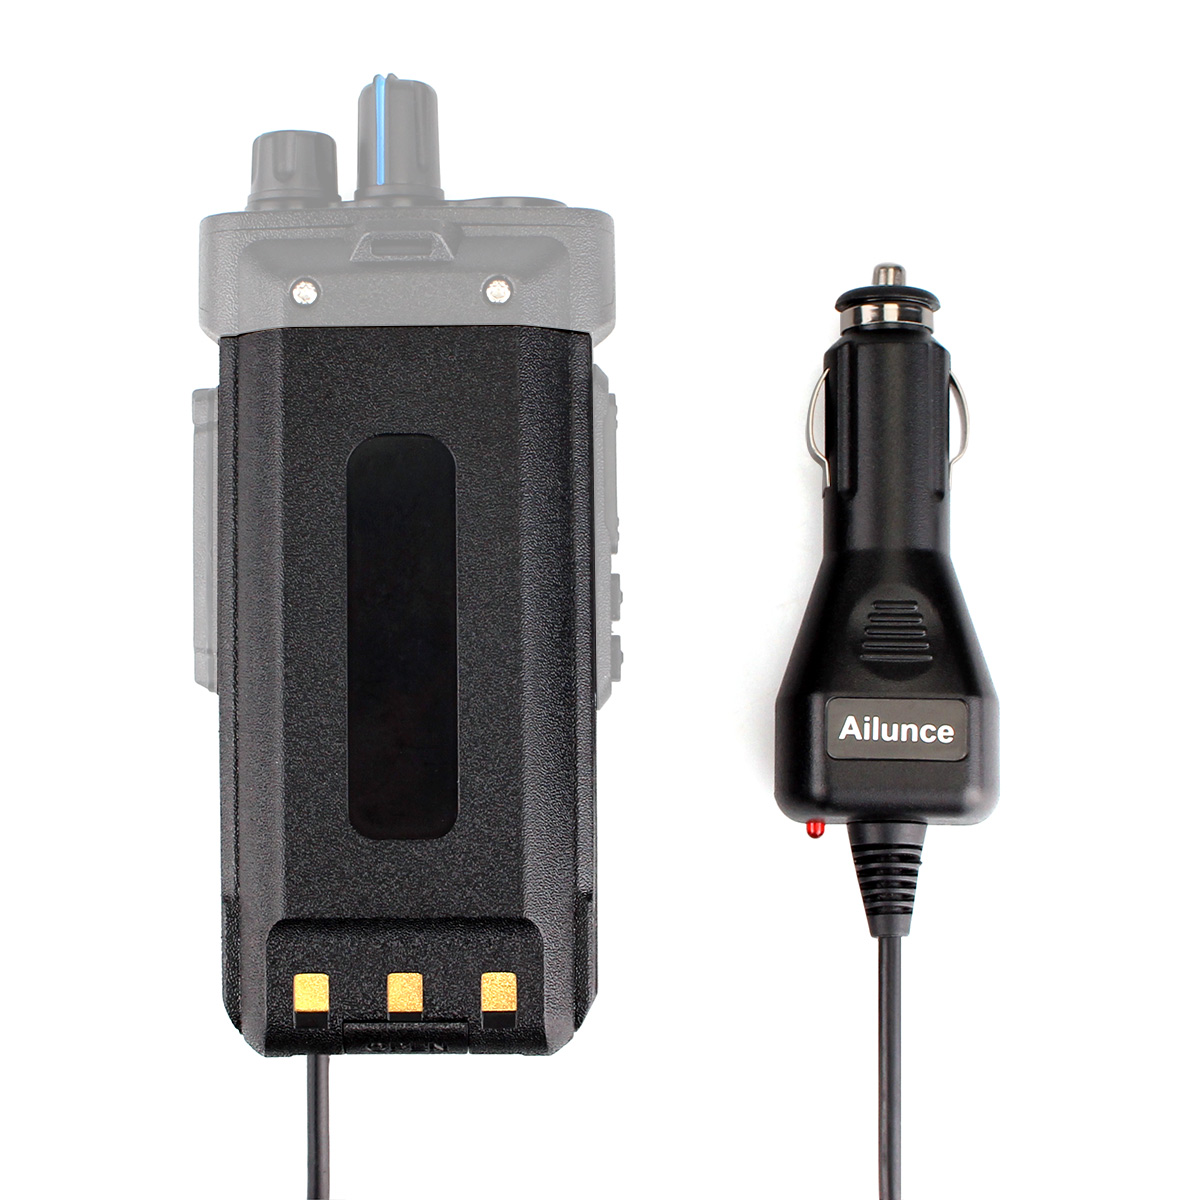 Car Charger Battery Eliminator 12-24V for Ailunce HD1 DMR Two-Way Radio US Ship